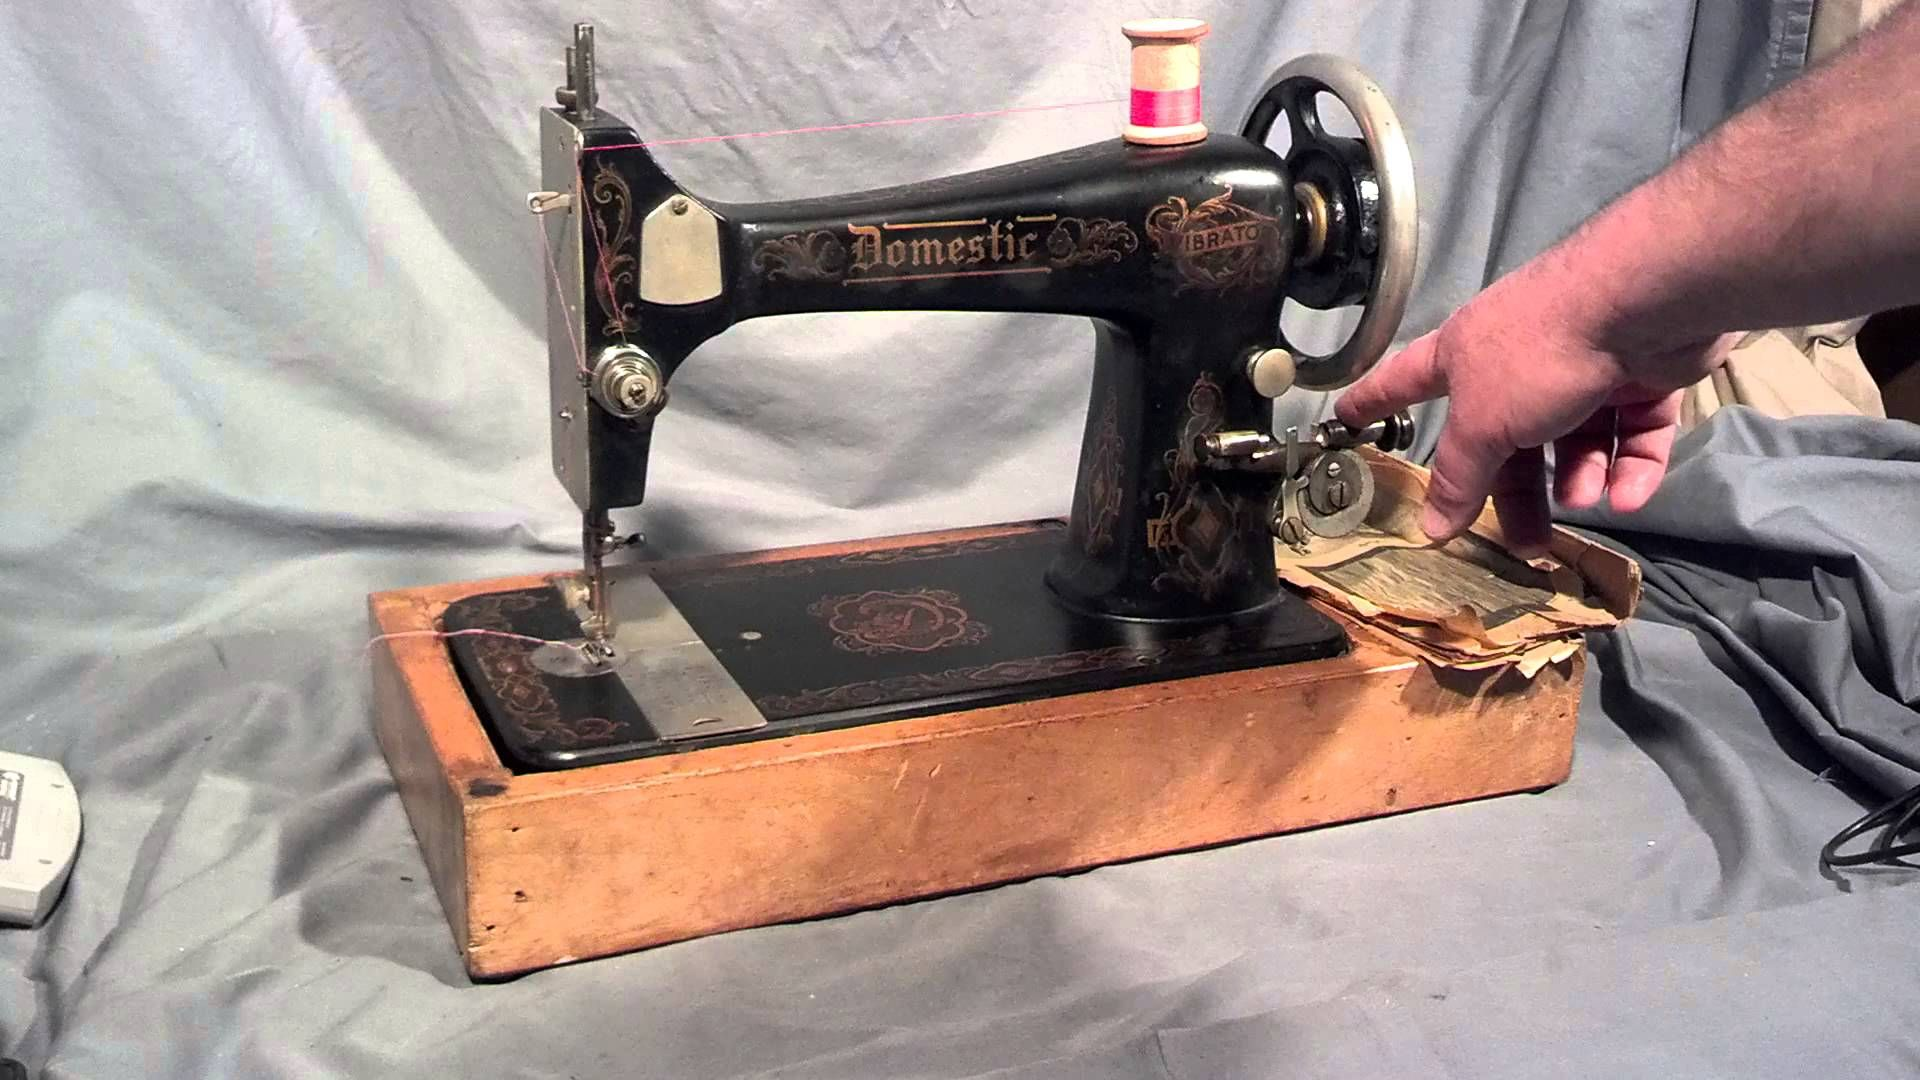 This Video Demonstrates An Antique Domestic Vibrator Treadle Sewing